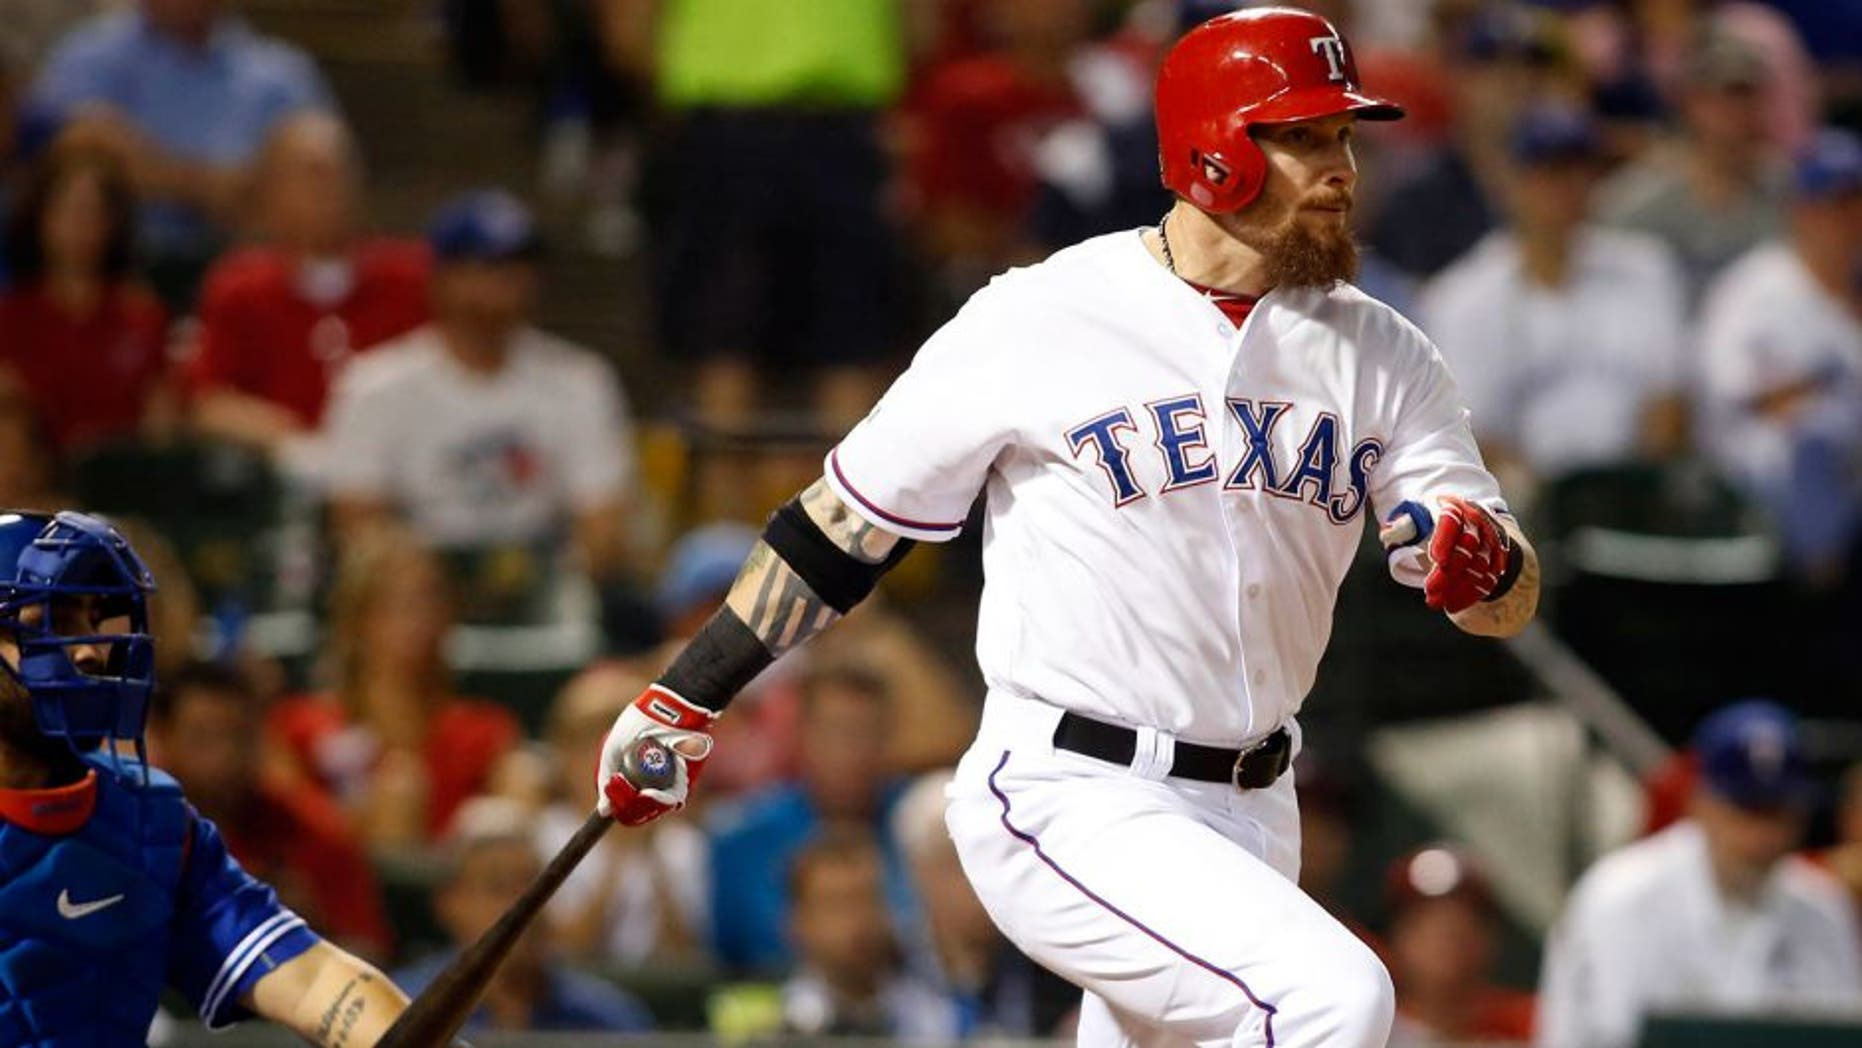 Oct 11, 2015; Arlington, TX, USA; Texas Rangers left fielder Josh Hamilton hits a single against the Toronto Blue Jays in the fifth inning in game three of the ALDS at Globe Life Park in Arlington. Mandatory Credit: Tim Heitman-USA TODAY Sports